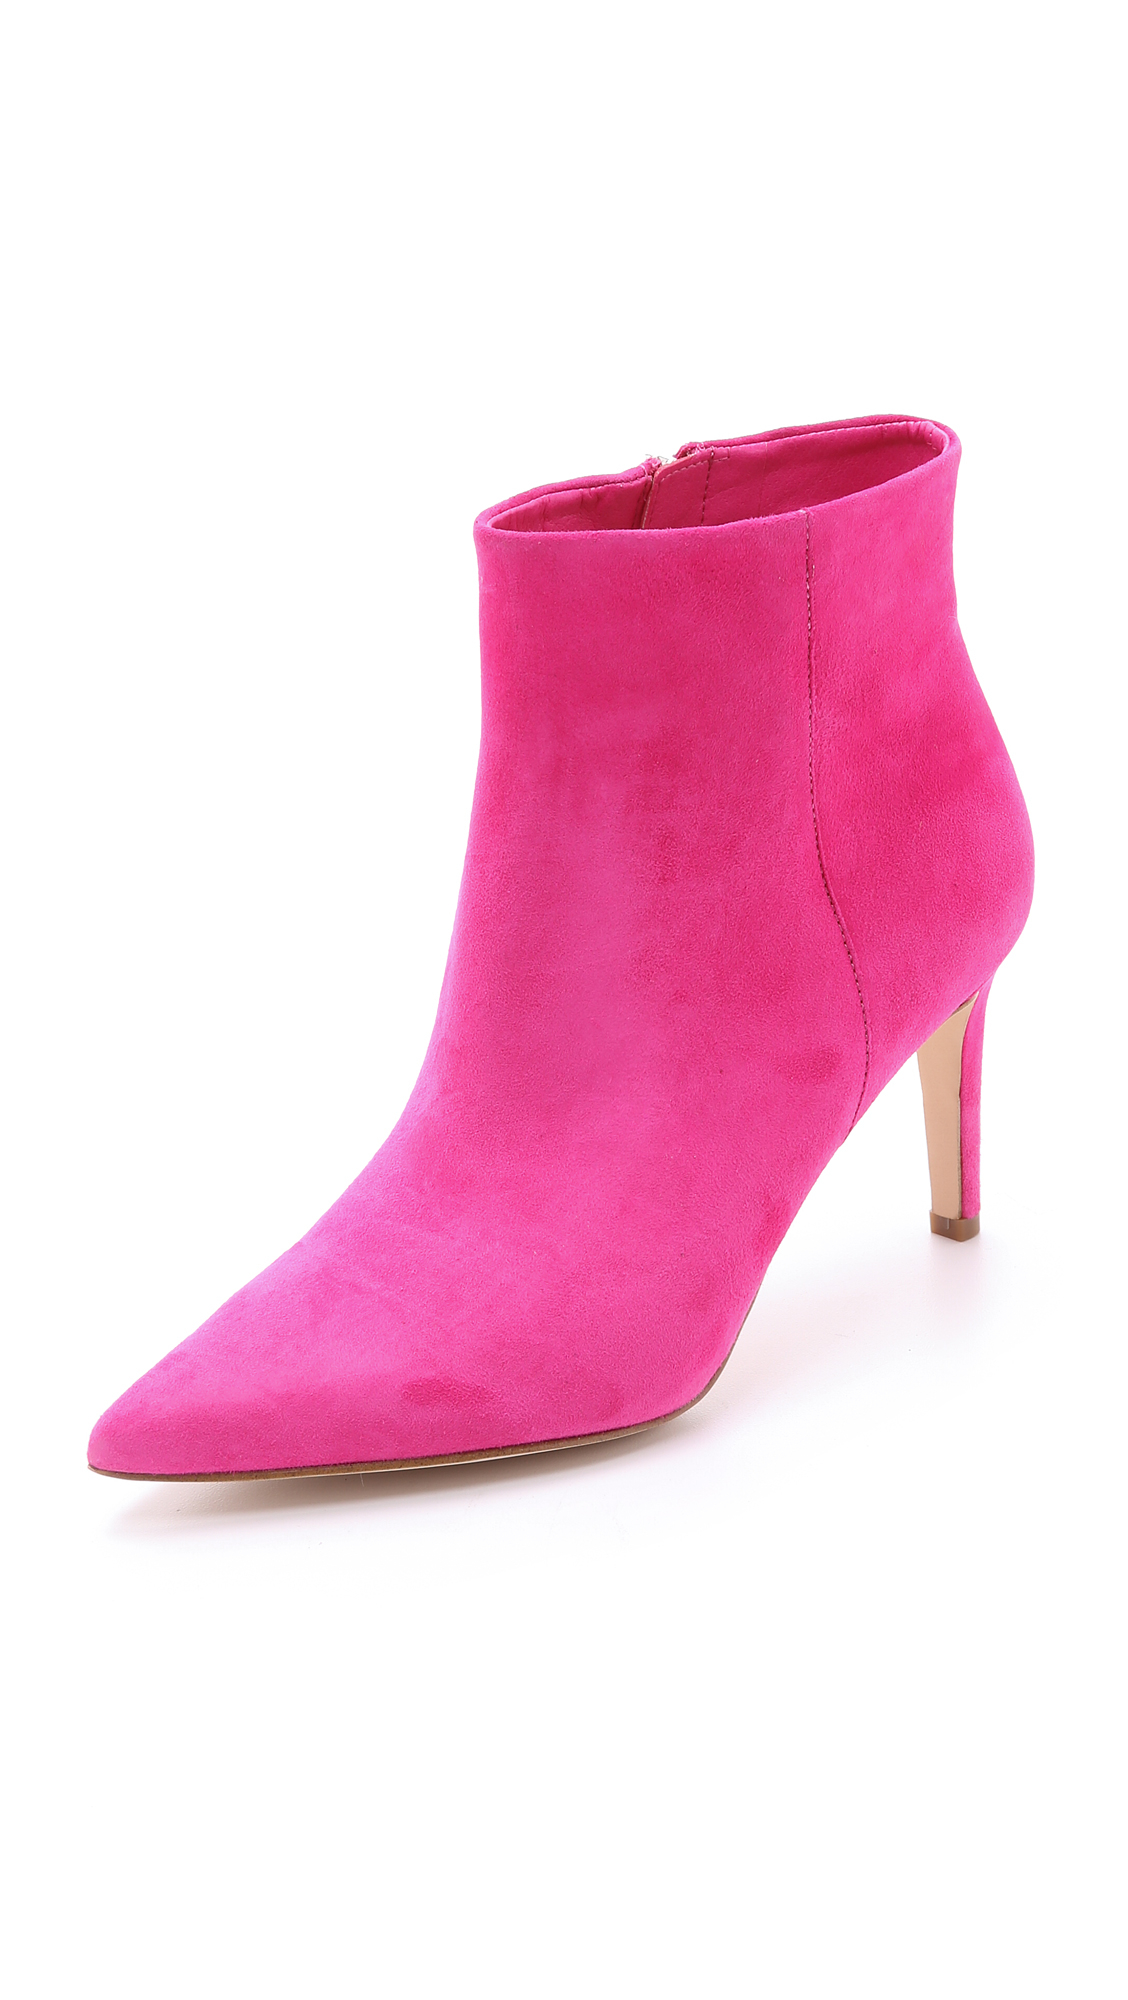 b15f9169ce687f Lyst - Sam Edelman Karen Suede Booties - Candy Pink in Pink